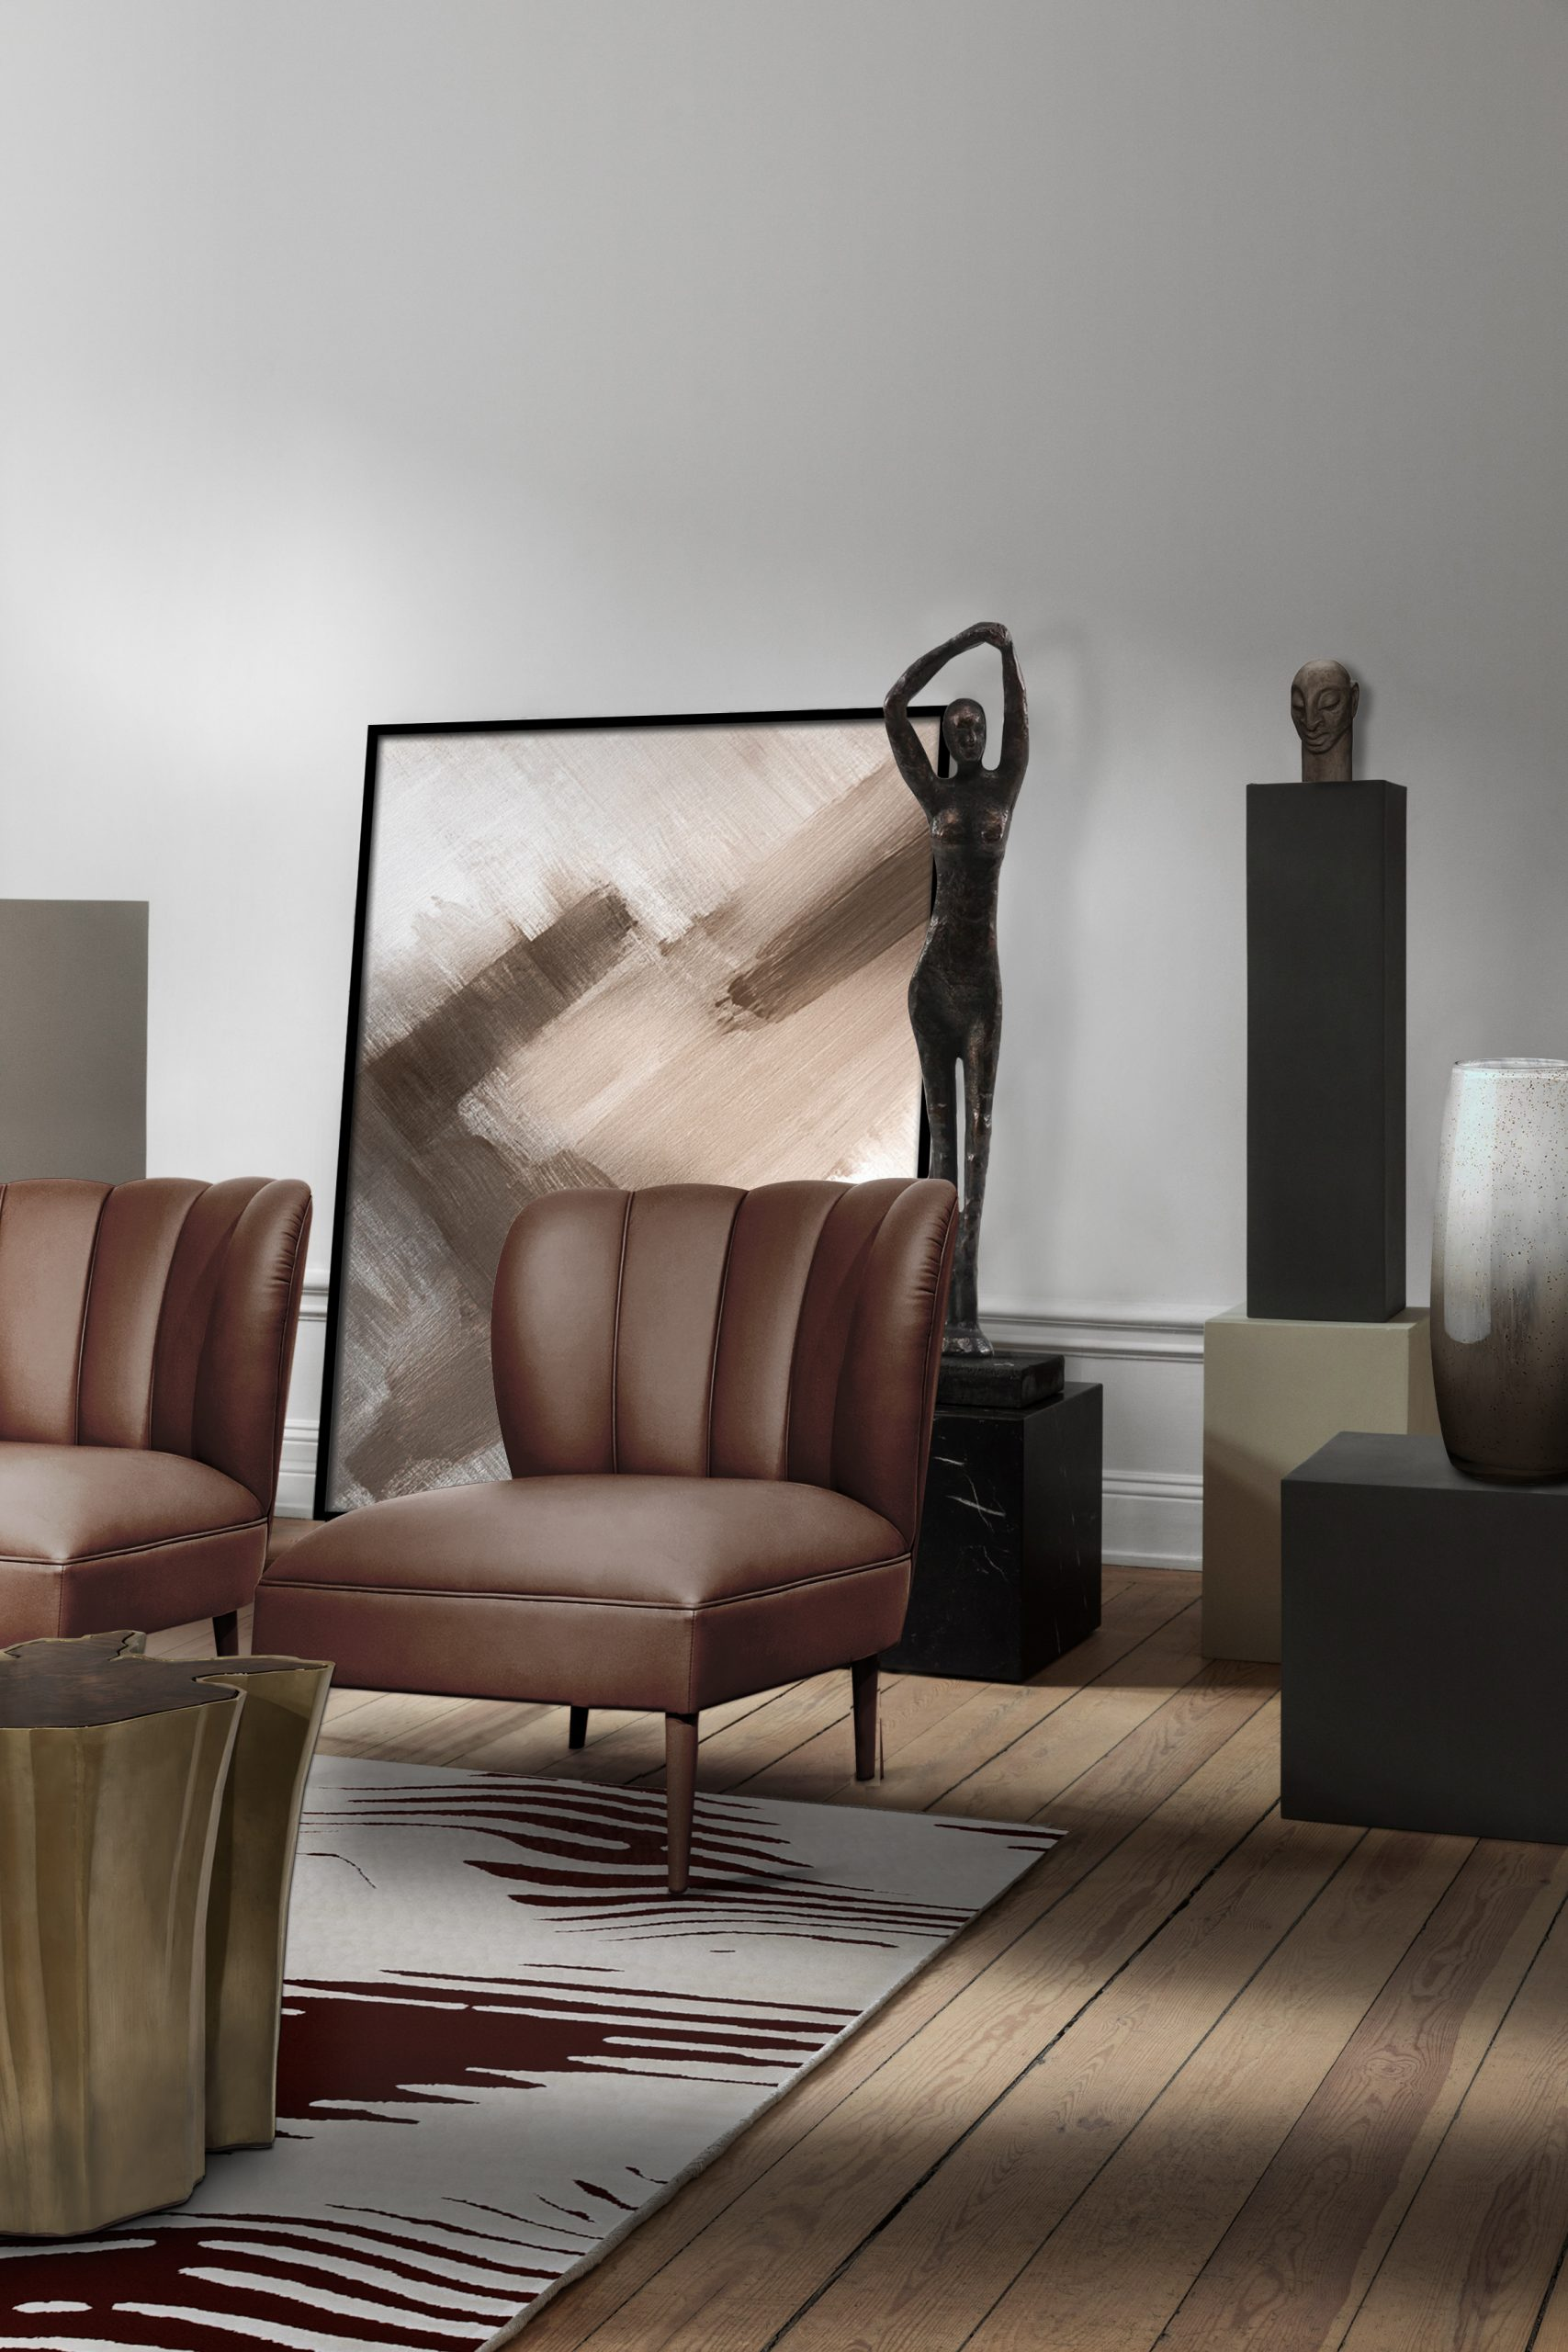 20 Modern Armchairs For A Bold And Timeless Design modern armchairs 20 Modern Armchairs For A Bold And Timeless Design dalyan armchair sequoia side scaled